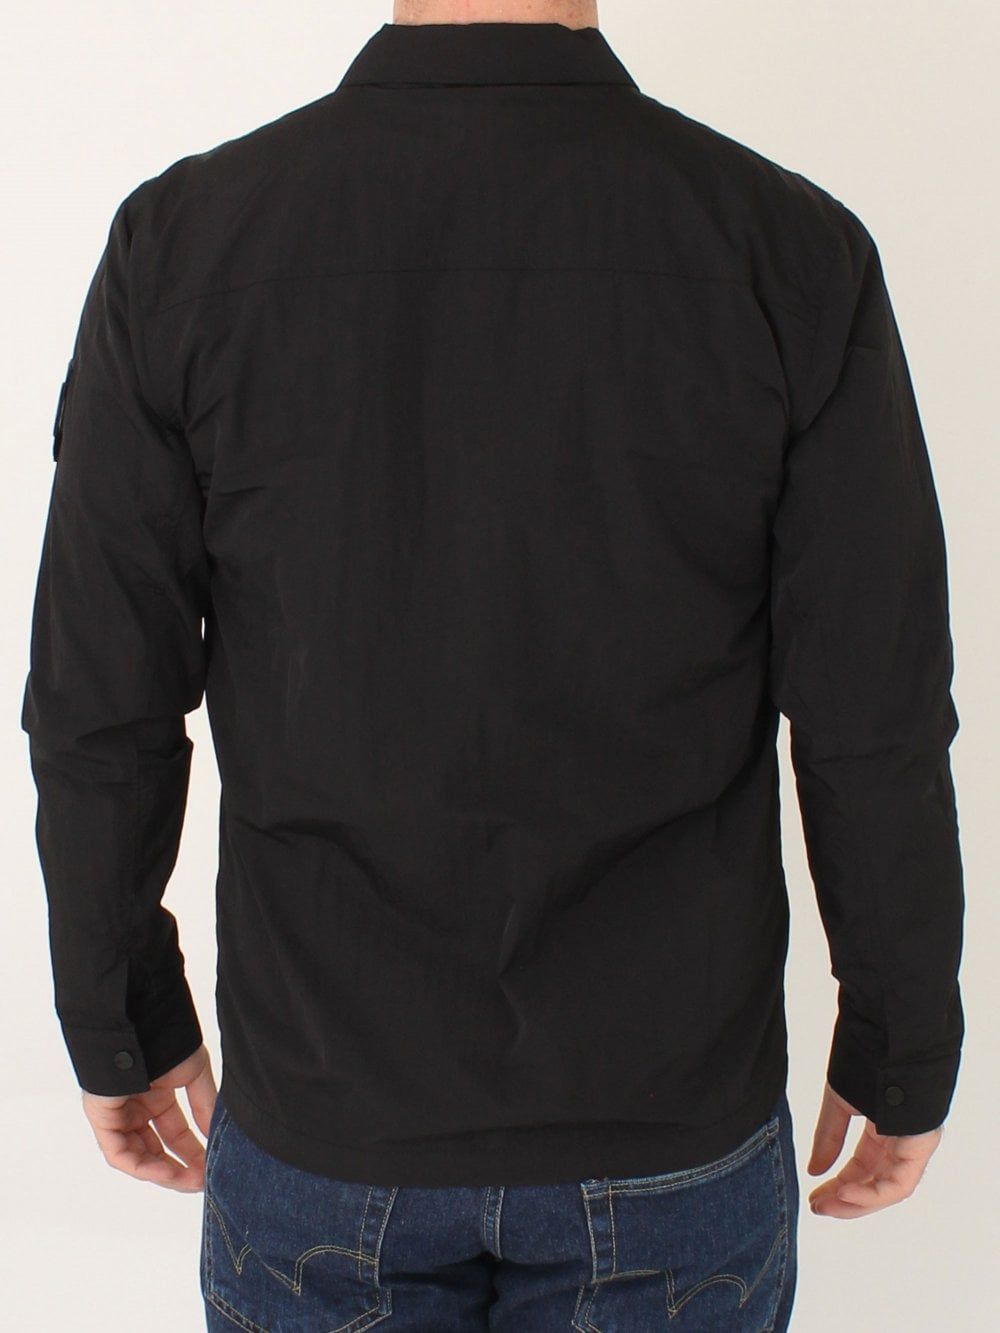 a6efb605c2a Marshall Artist Liquid Bellow Pocket Overshirt in Black